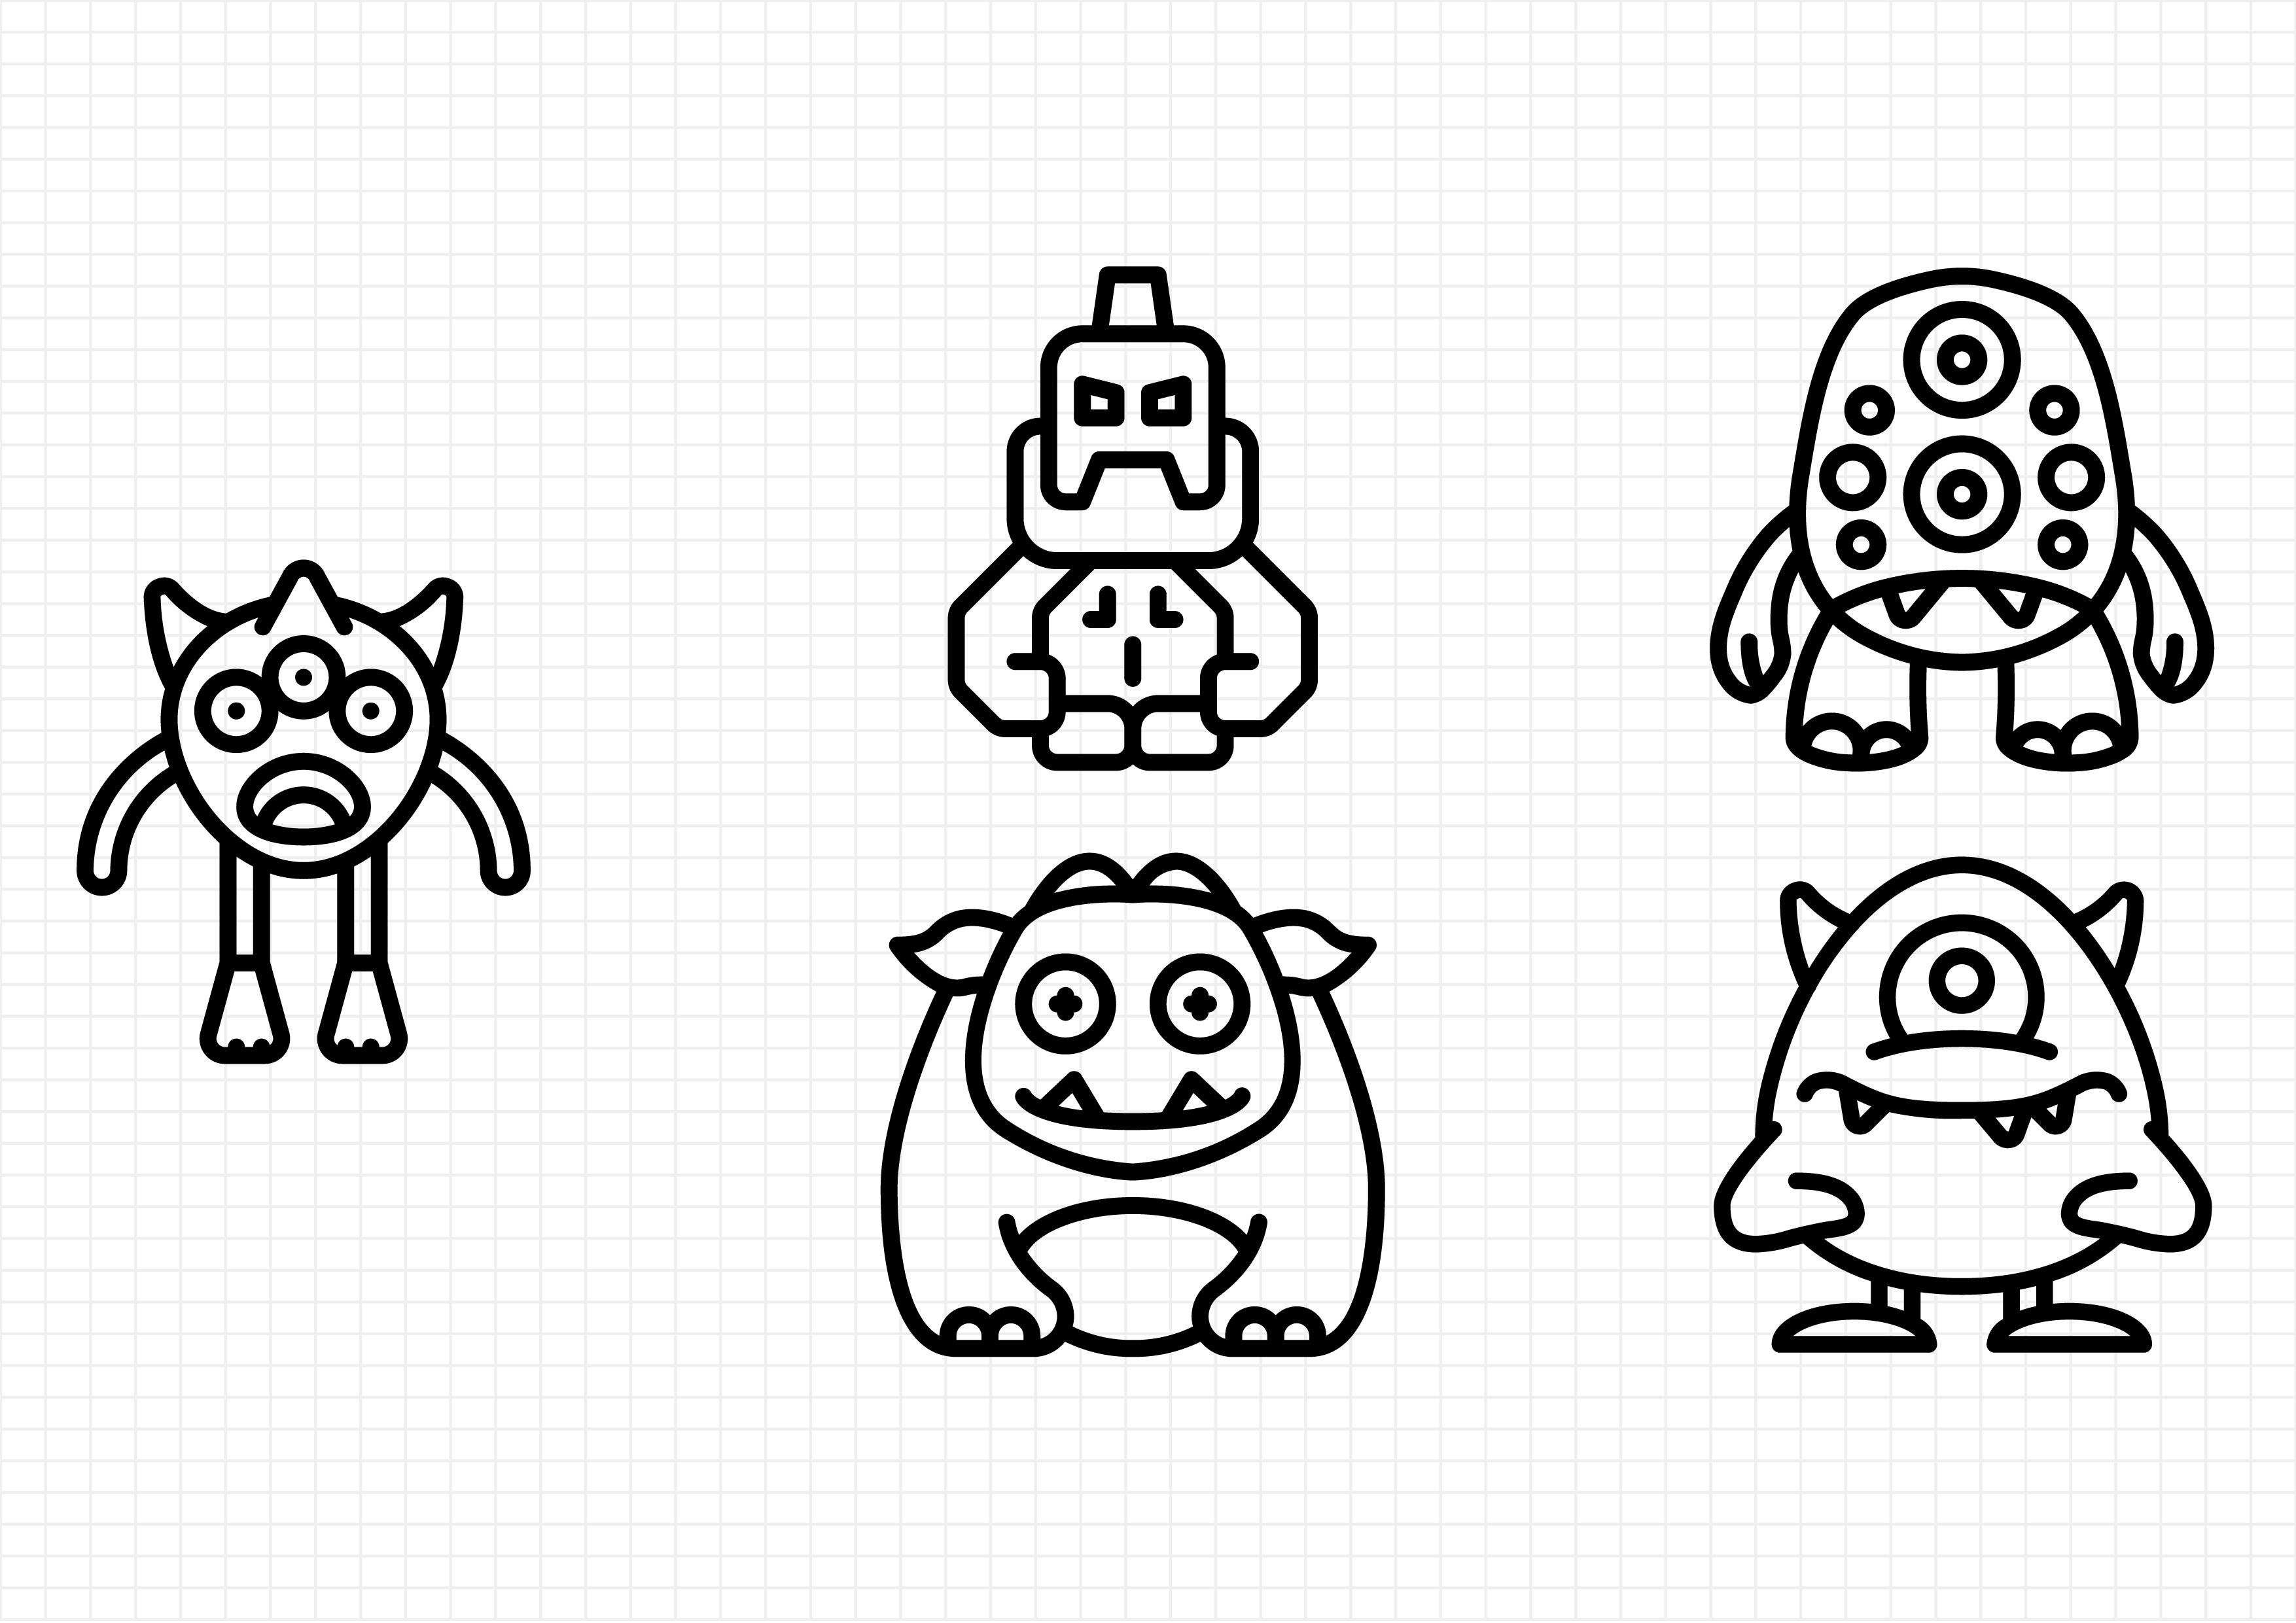 Download Free Monsters Graphic By Beryladamayu Creative Fabrica for Cricut Explore, Silhouette and other cutting machines.